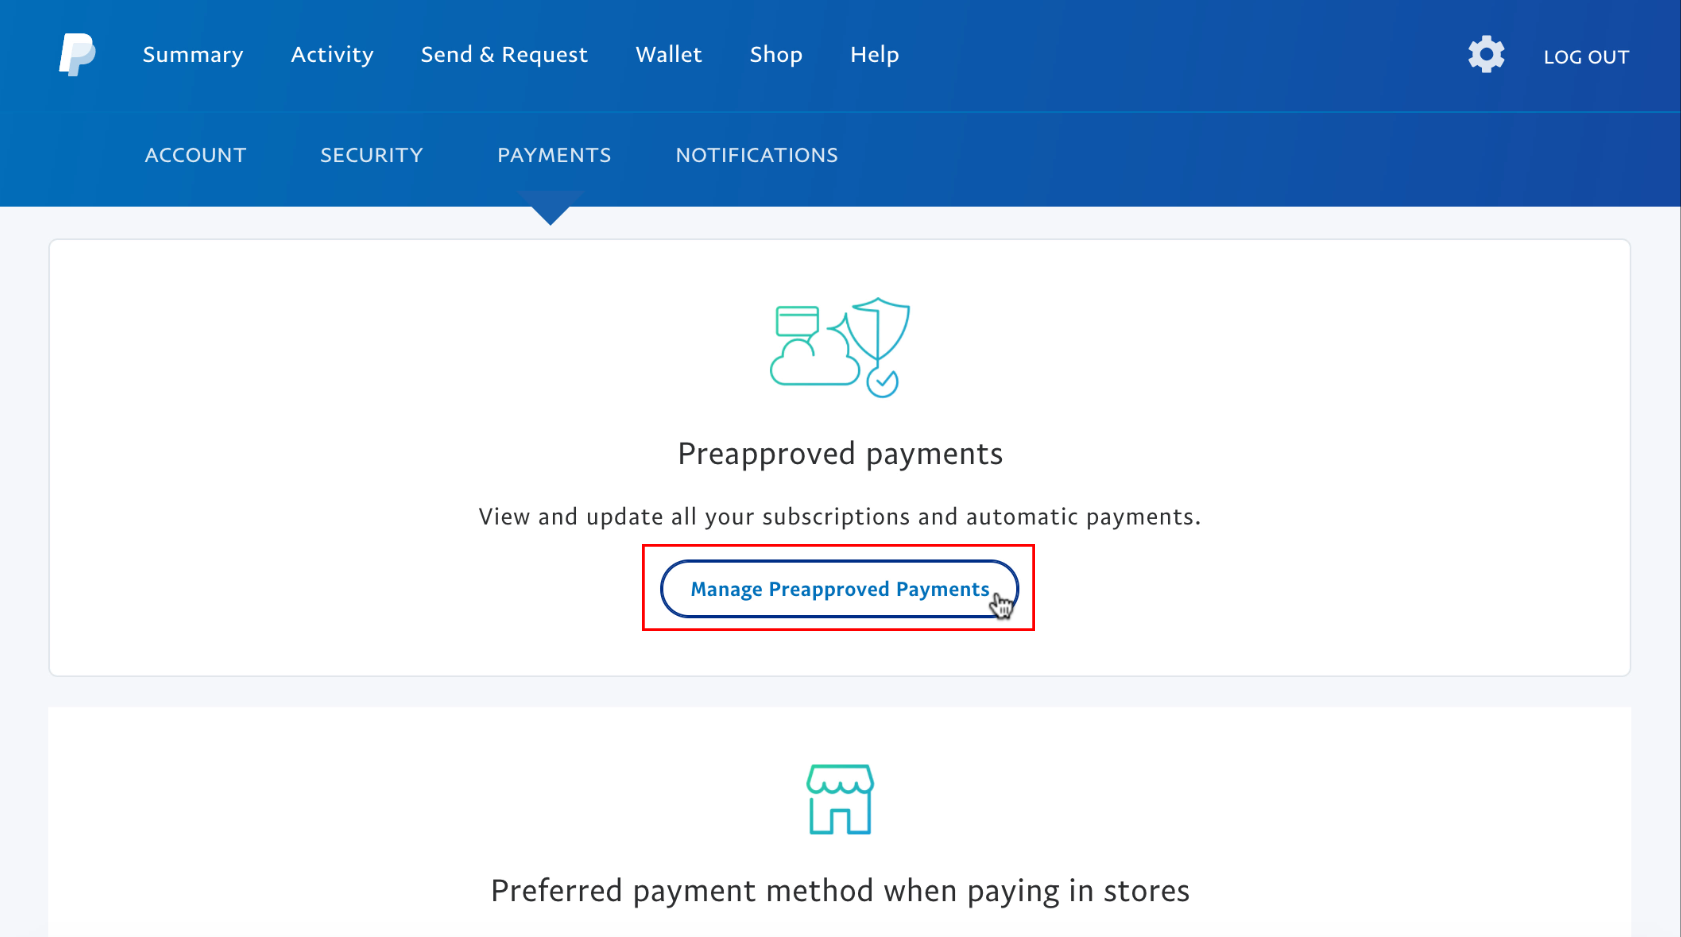 Click_Manage_Preapproved_Payments.png